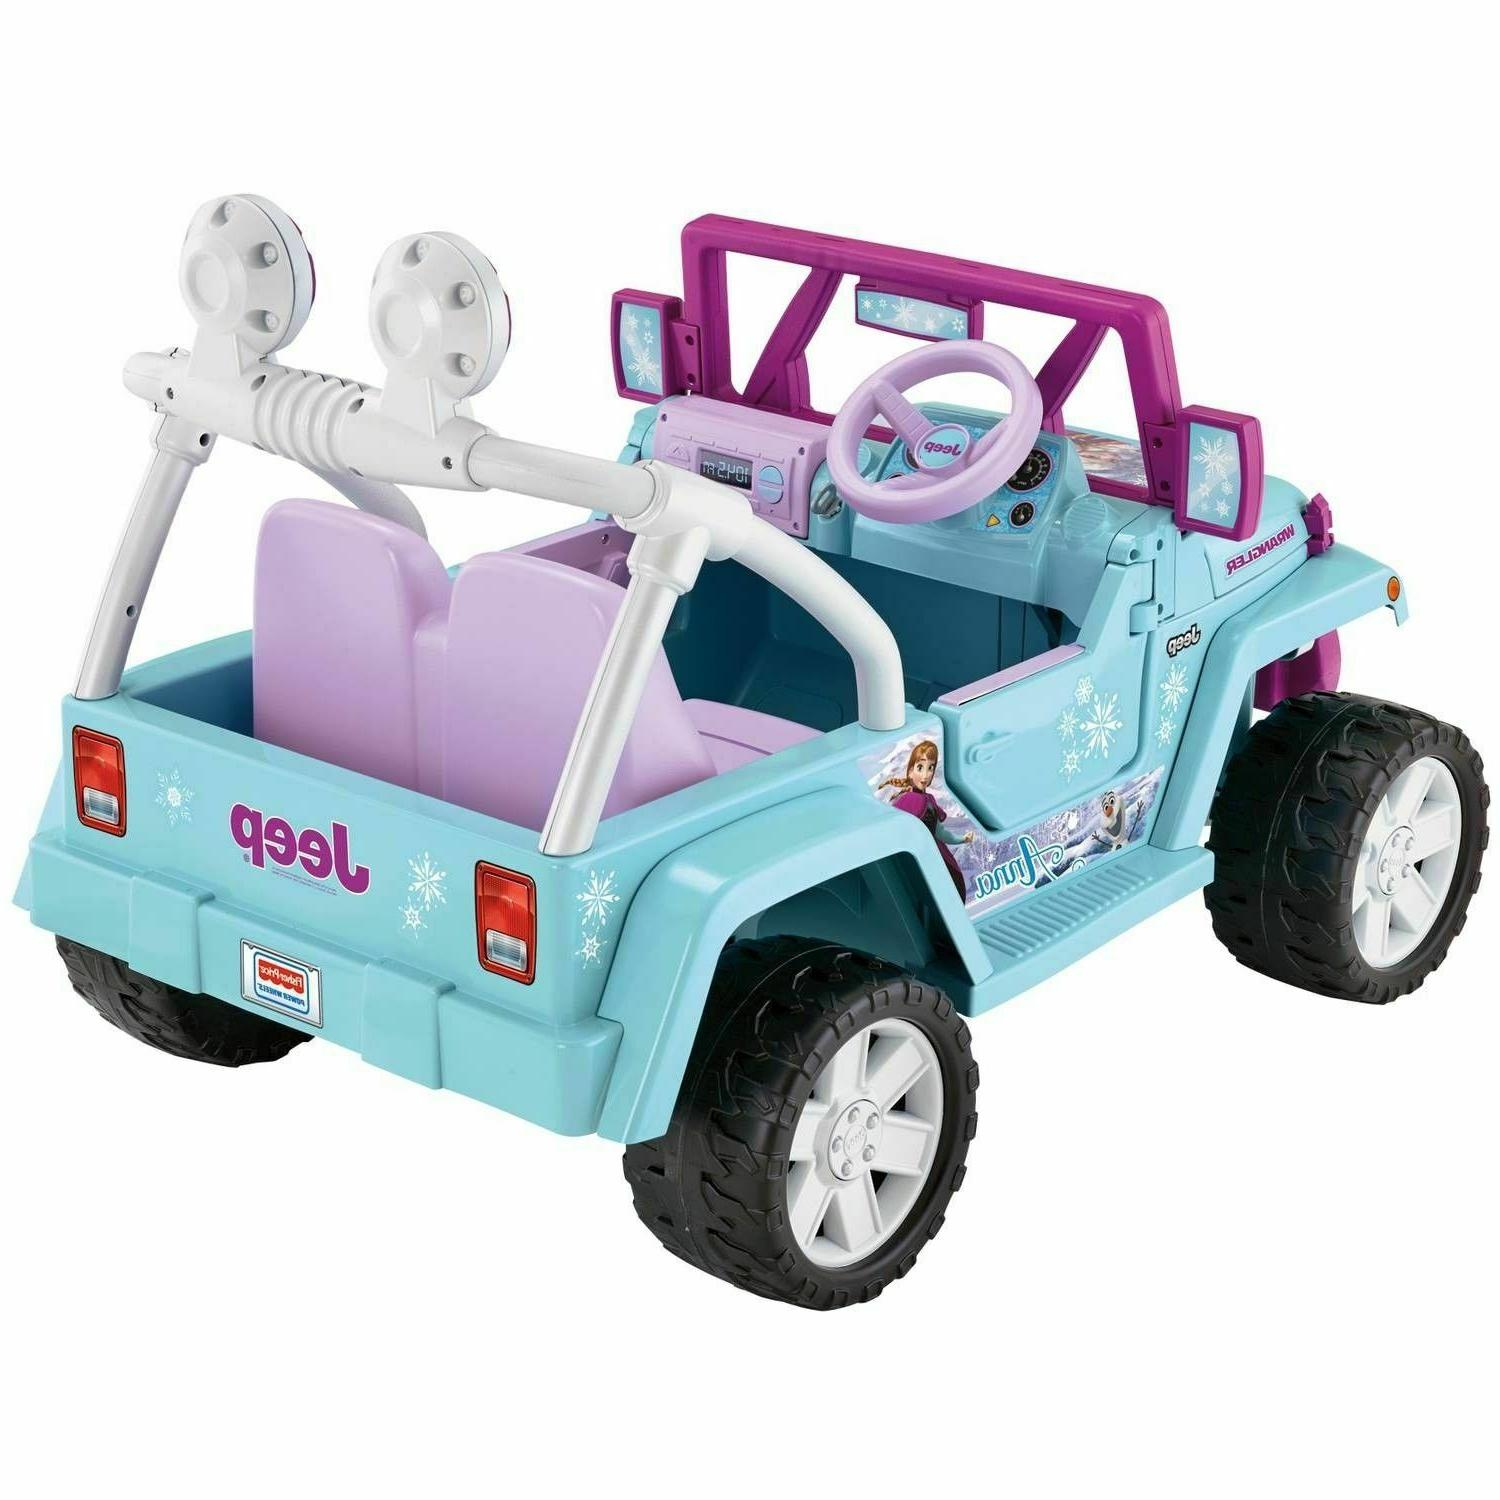 Power Battery-Powered Ride-On Play Frozen Jeep Wrangler 12-Volt